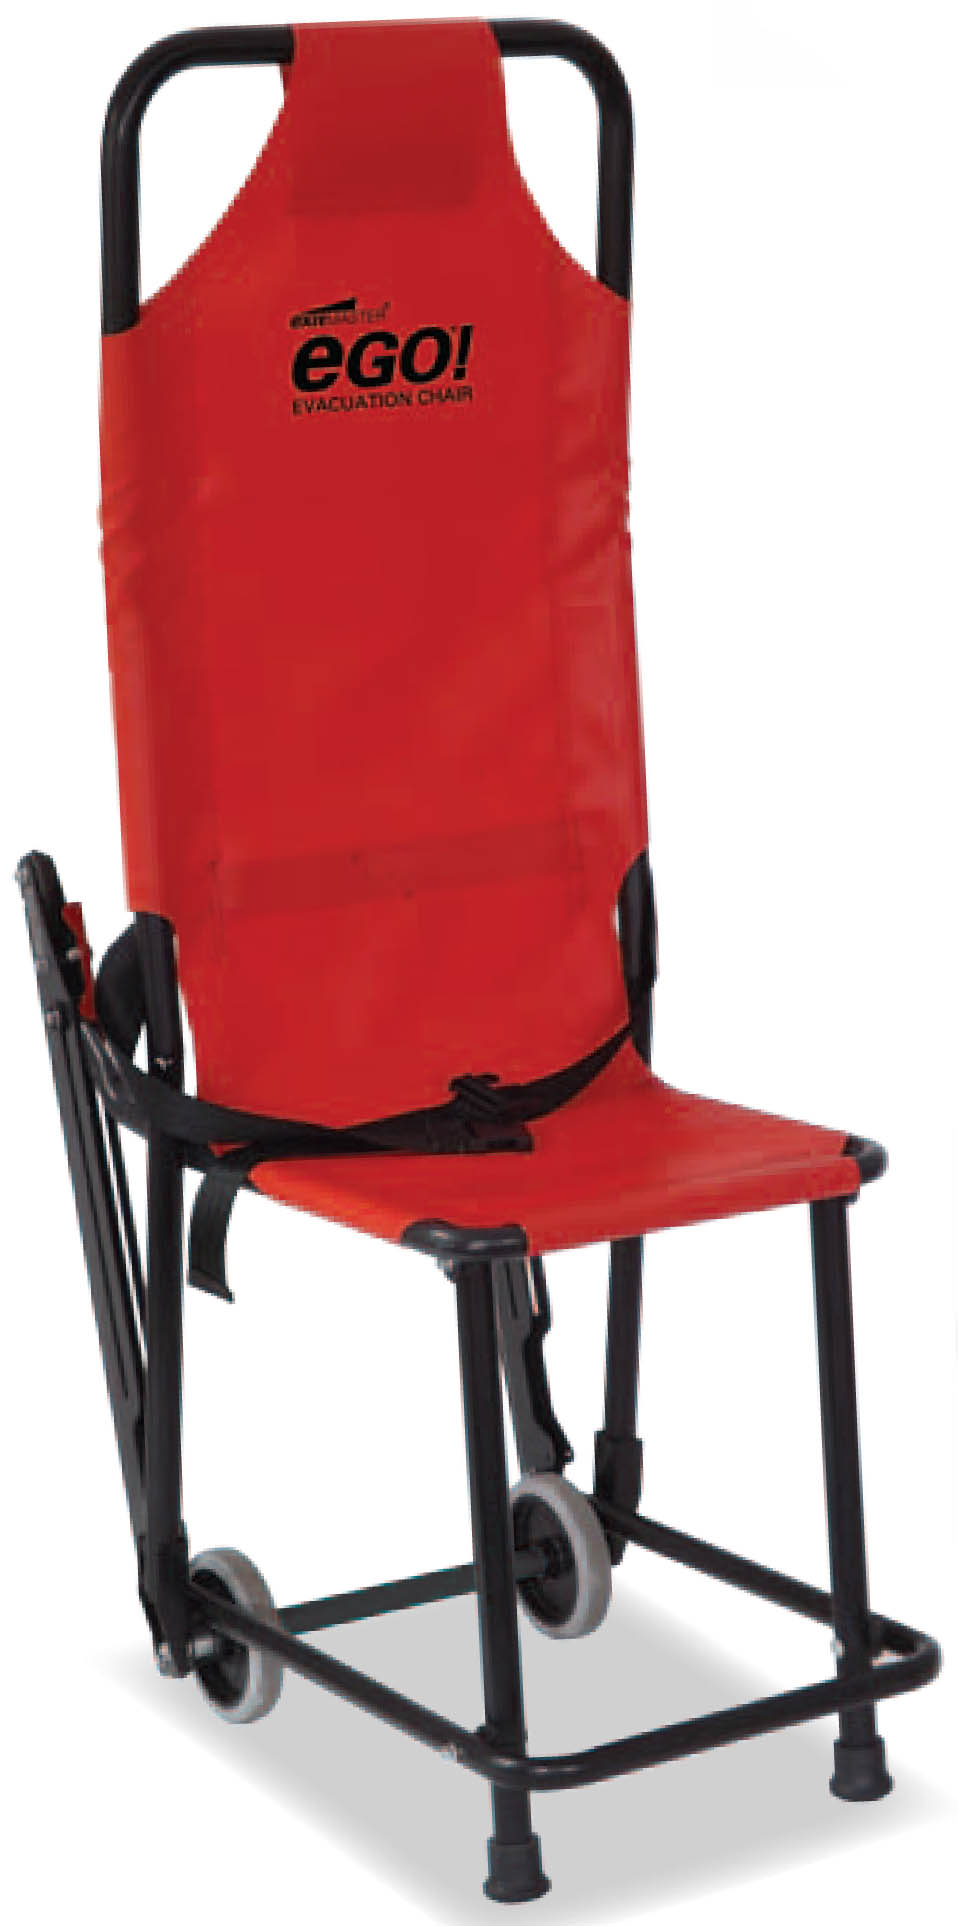 ego_evacuation_chair